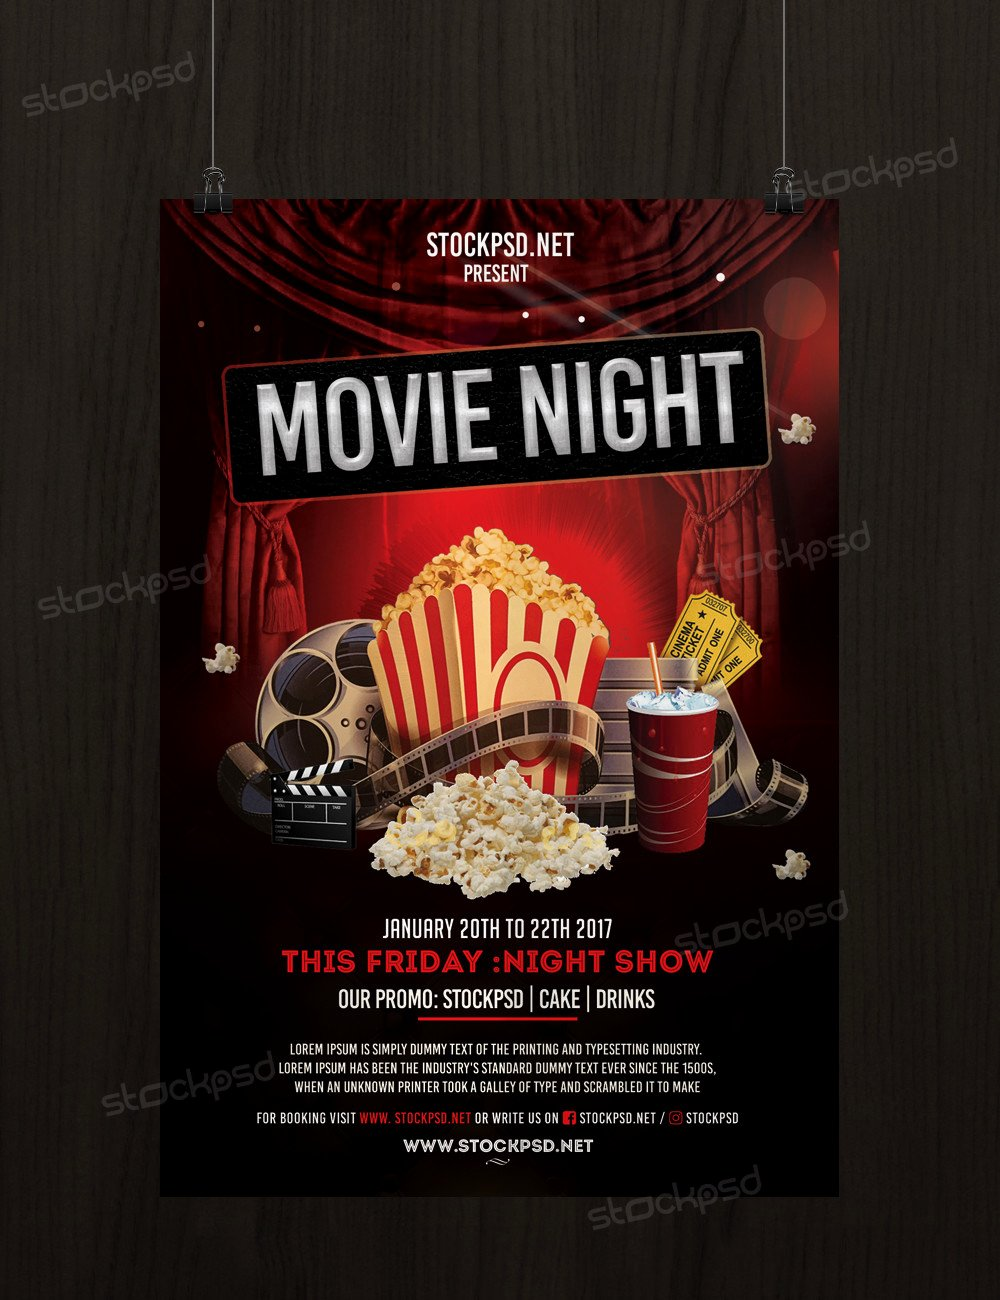 Free Movie Night Flyer Template Elegant Movie Night Free Psd Flyer Template Stockpsd